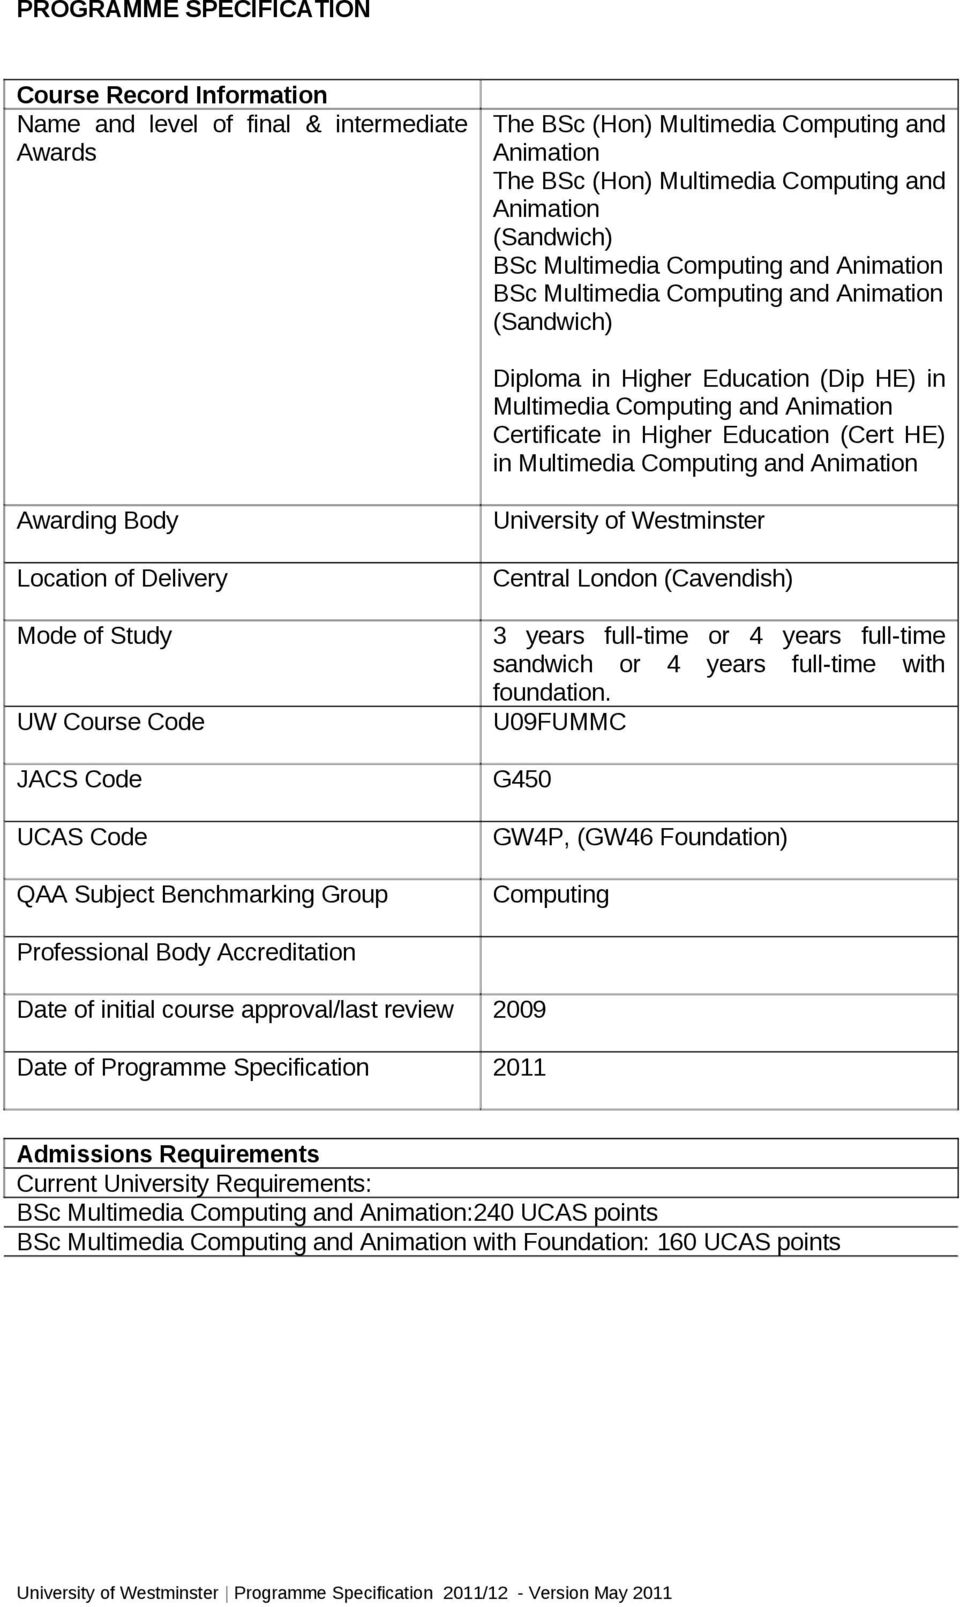 Education (Cert HE) in Multimedia Computing and Animation Awarding Body Location of Delivery Mode of Study UW Course Code JACS Code UCAS Code QAA Subject Benchmarking Group University of Westminster